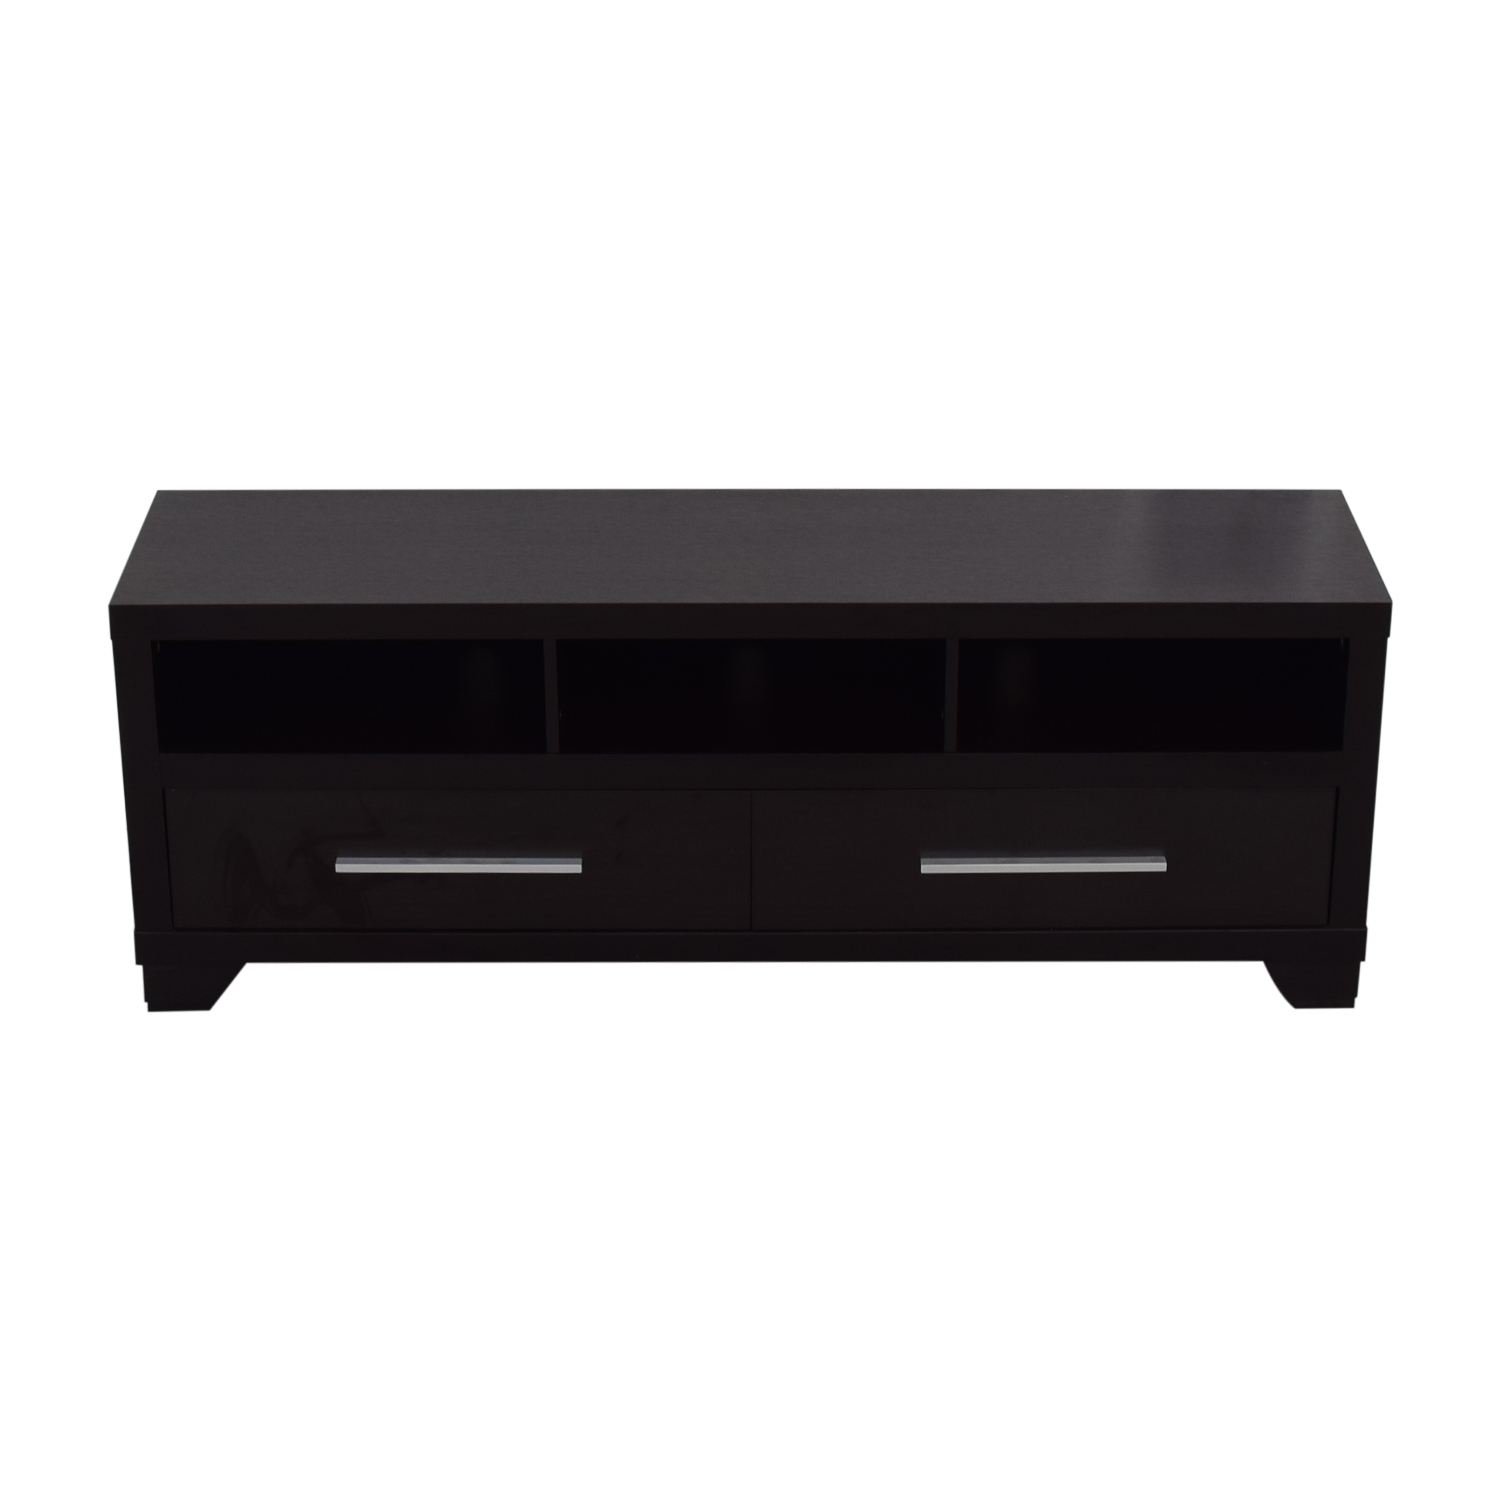 dCOR Design dCOR Design Melso TV Stand on sale